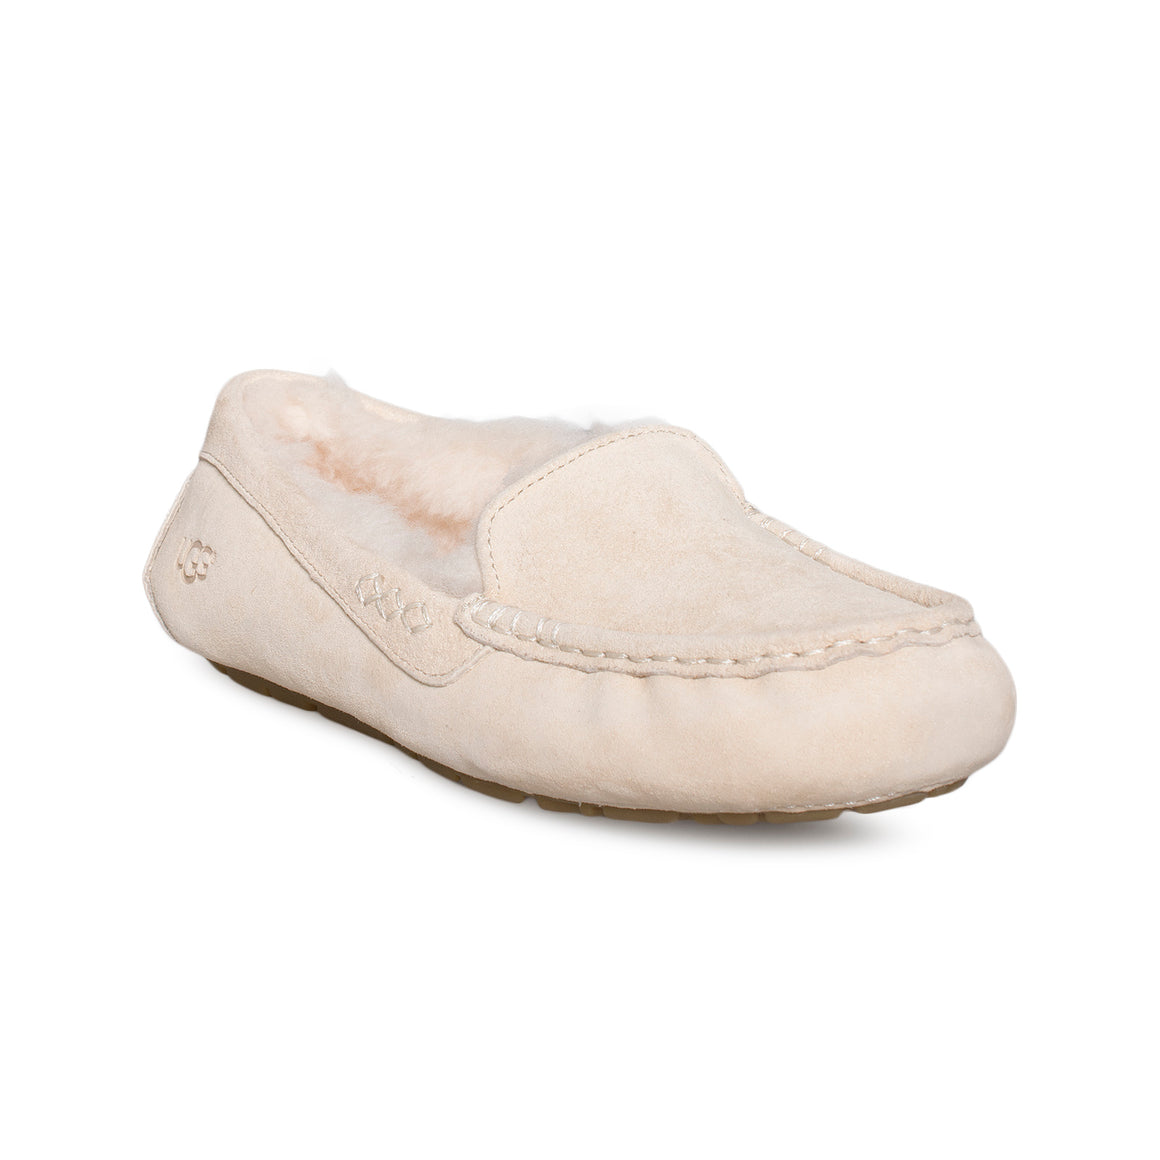 UGG Ansley Cream Slippers